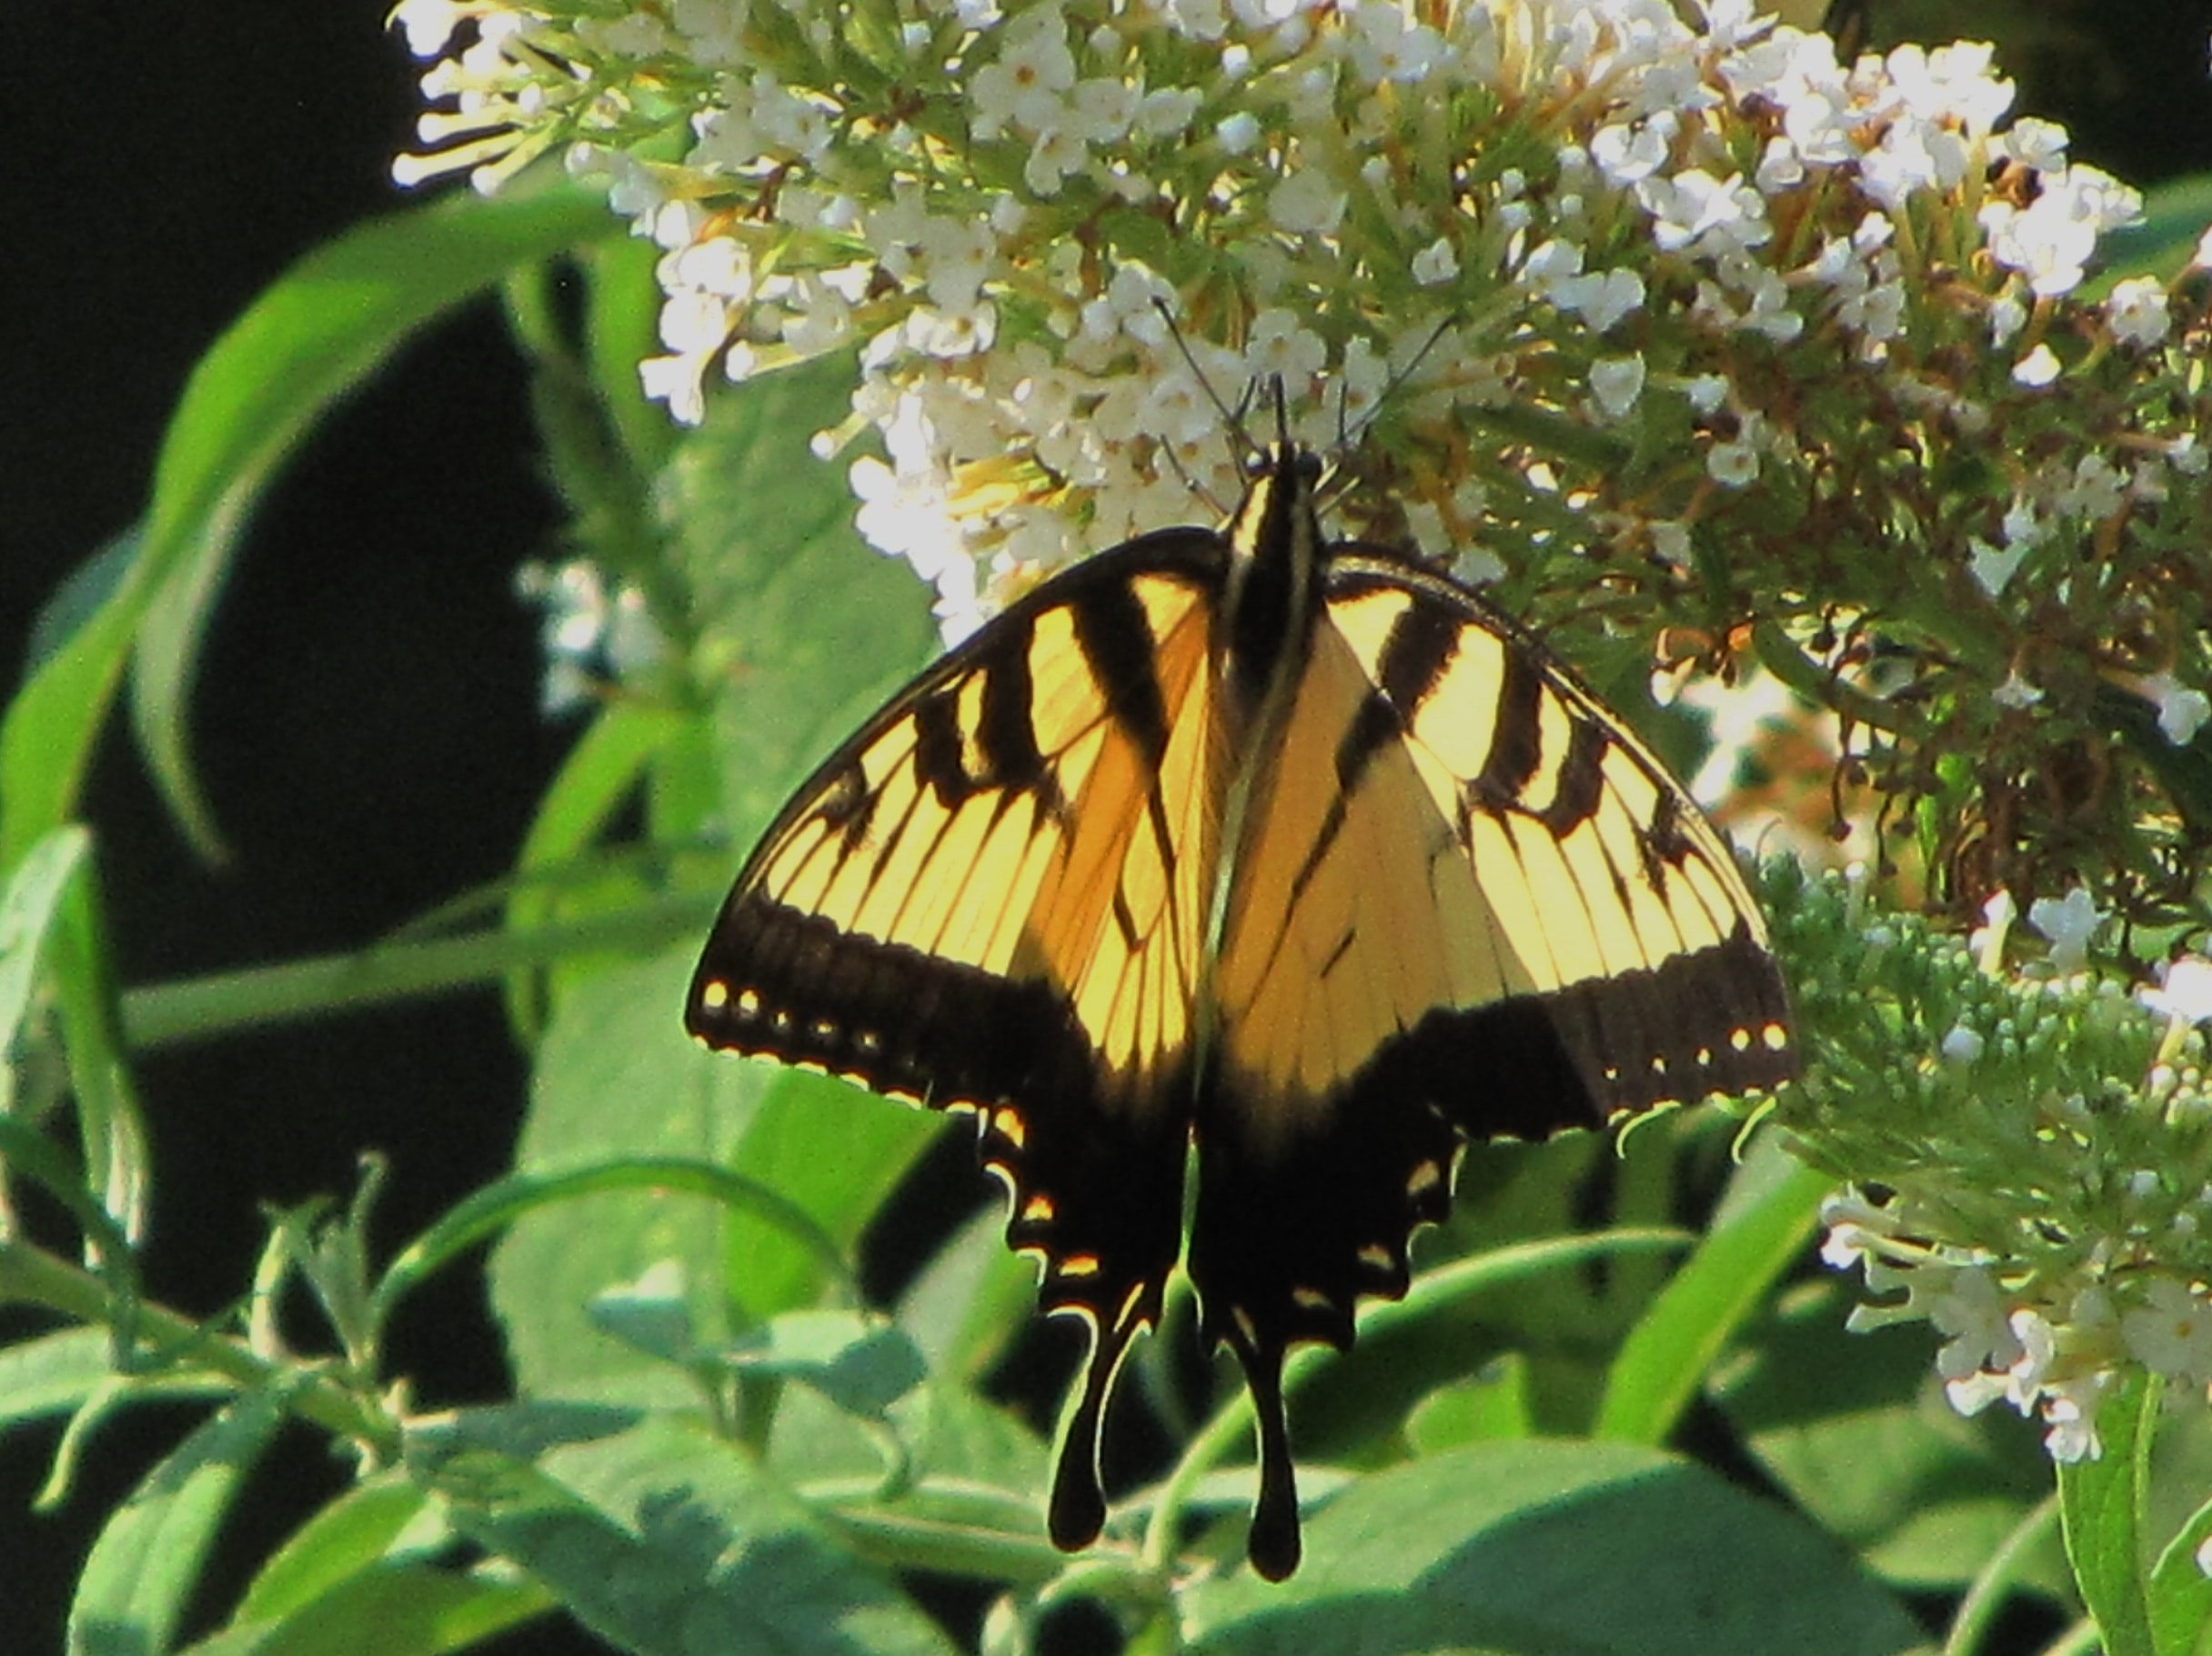 A large yellow and black butterfly on white flowers.